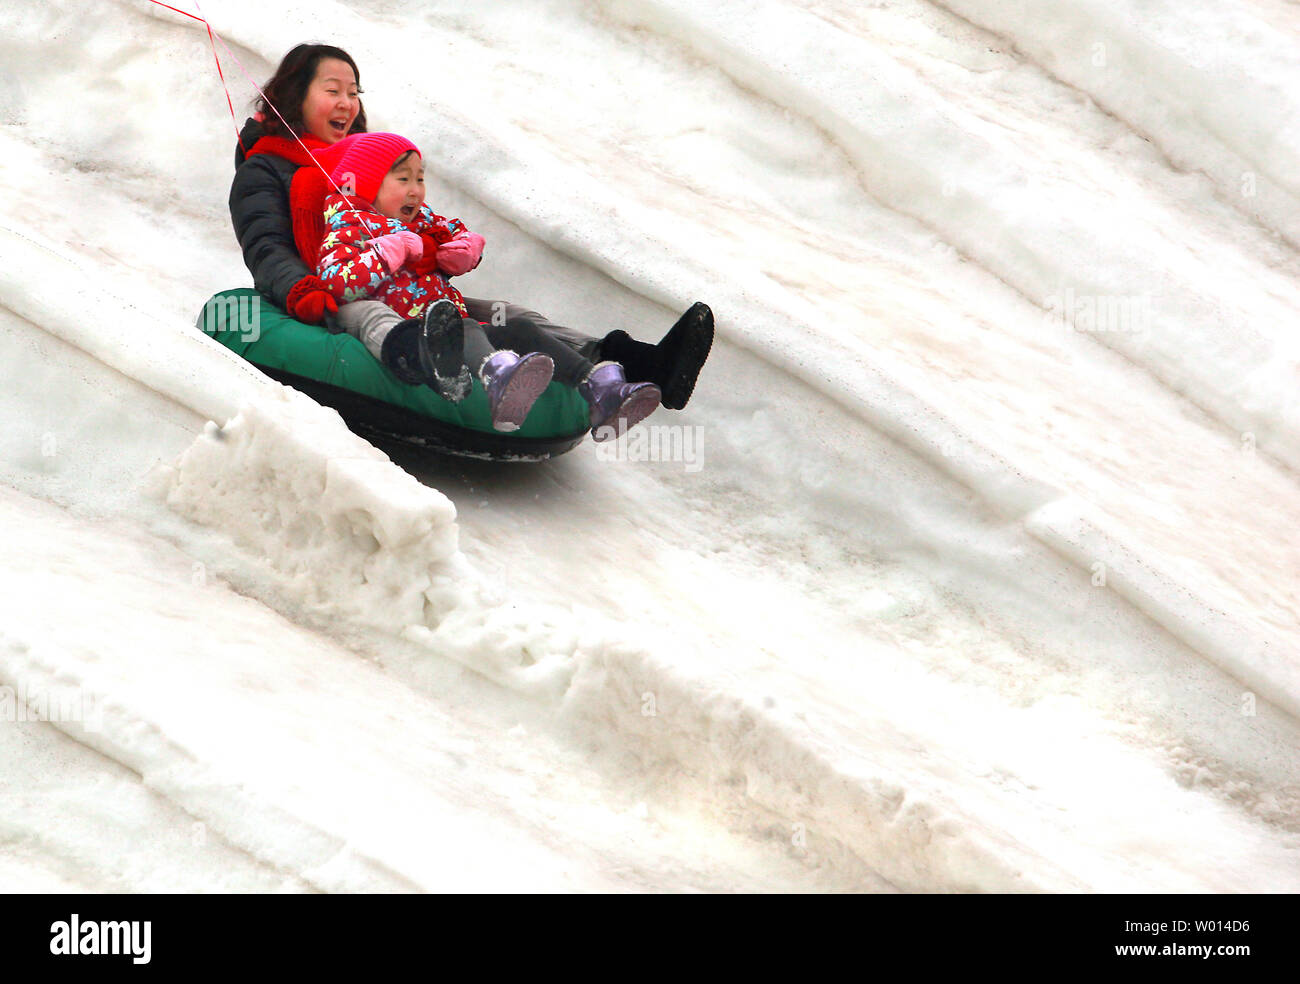 Chinese enjoy a fast downhill slide on a rubber tire at a snow park with rides built out of ice and snow in Beijing on February 15, 2014.  China's capital is experiencing an unusually warm winter, as with many cities around the world that are also experiencing unusually warm or cold weather.    UPI/Stephen Shaver - Stock Image